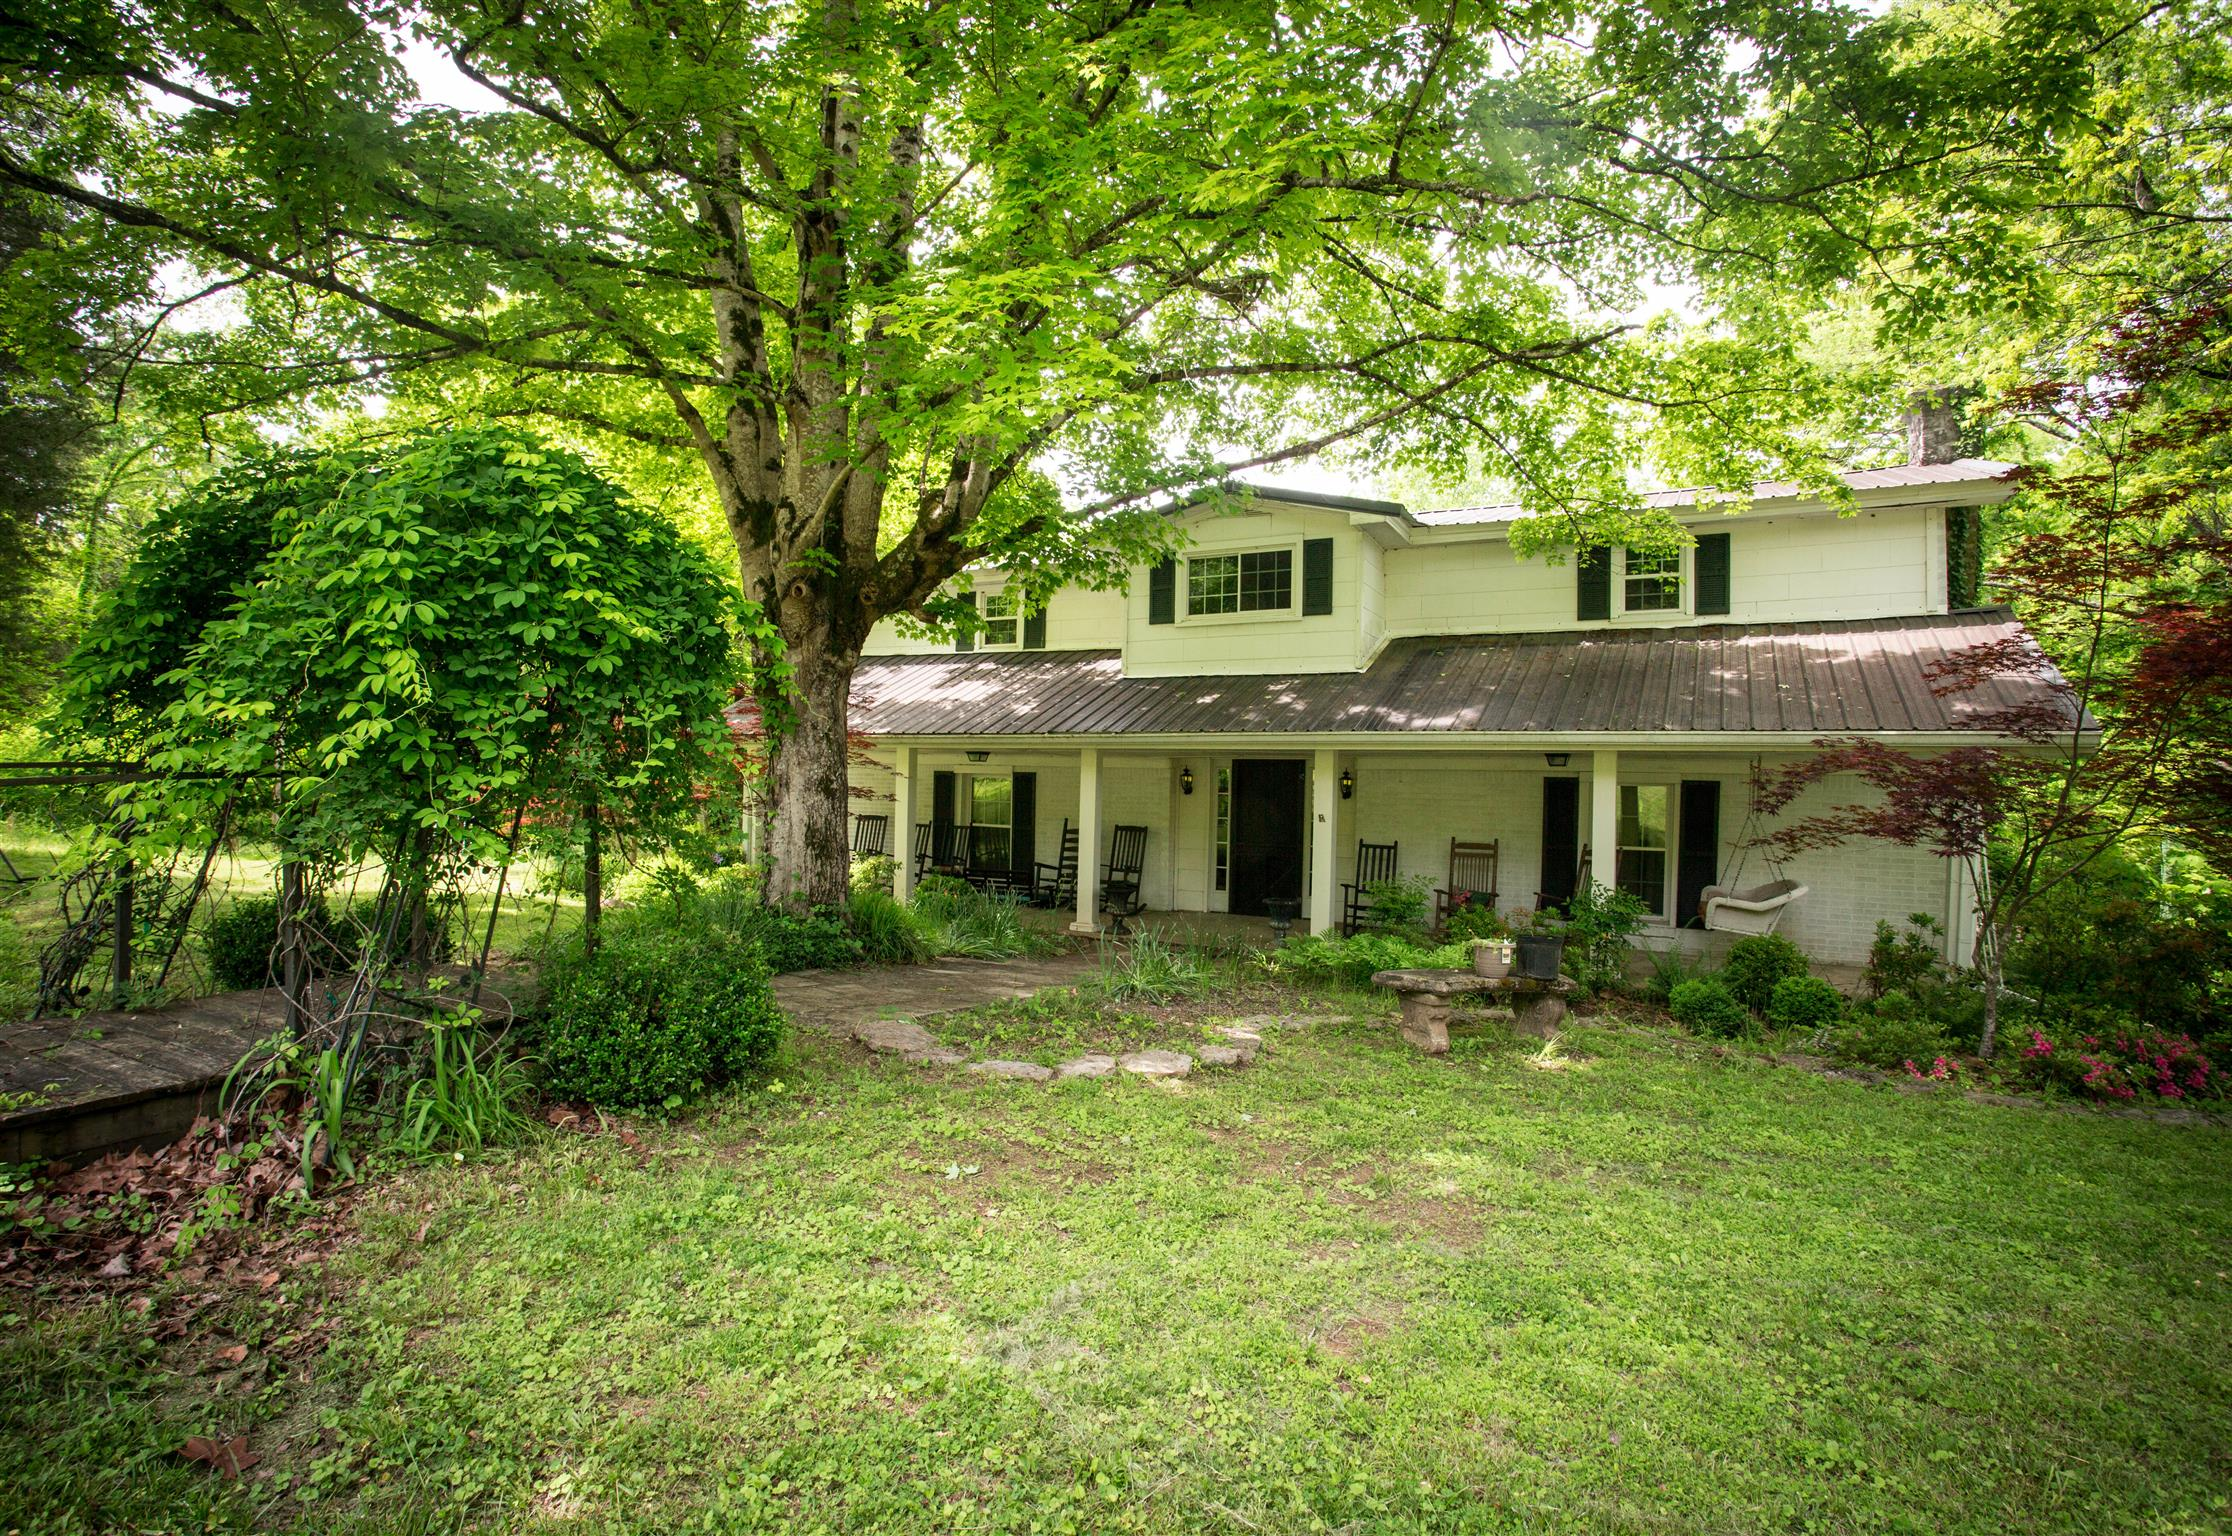 790 Ben Meyers Lane, Hilham, TN 38568 - Hilham, TN real estate listing